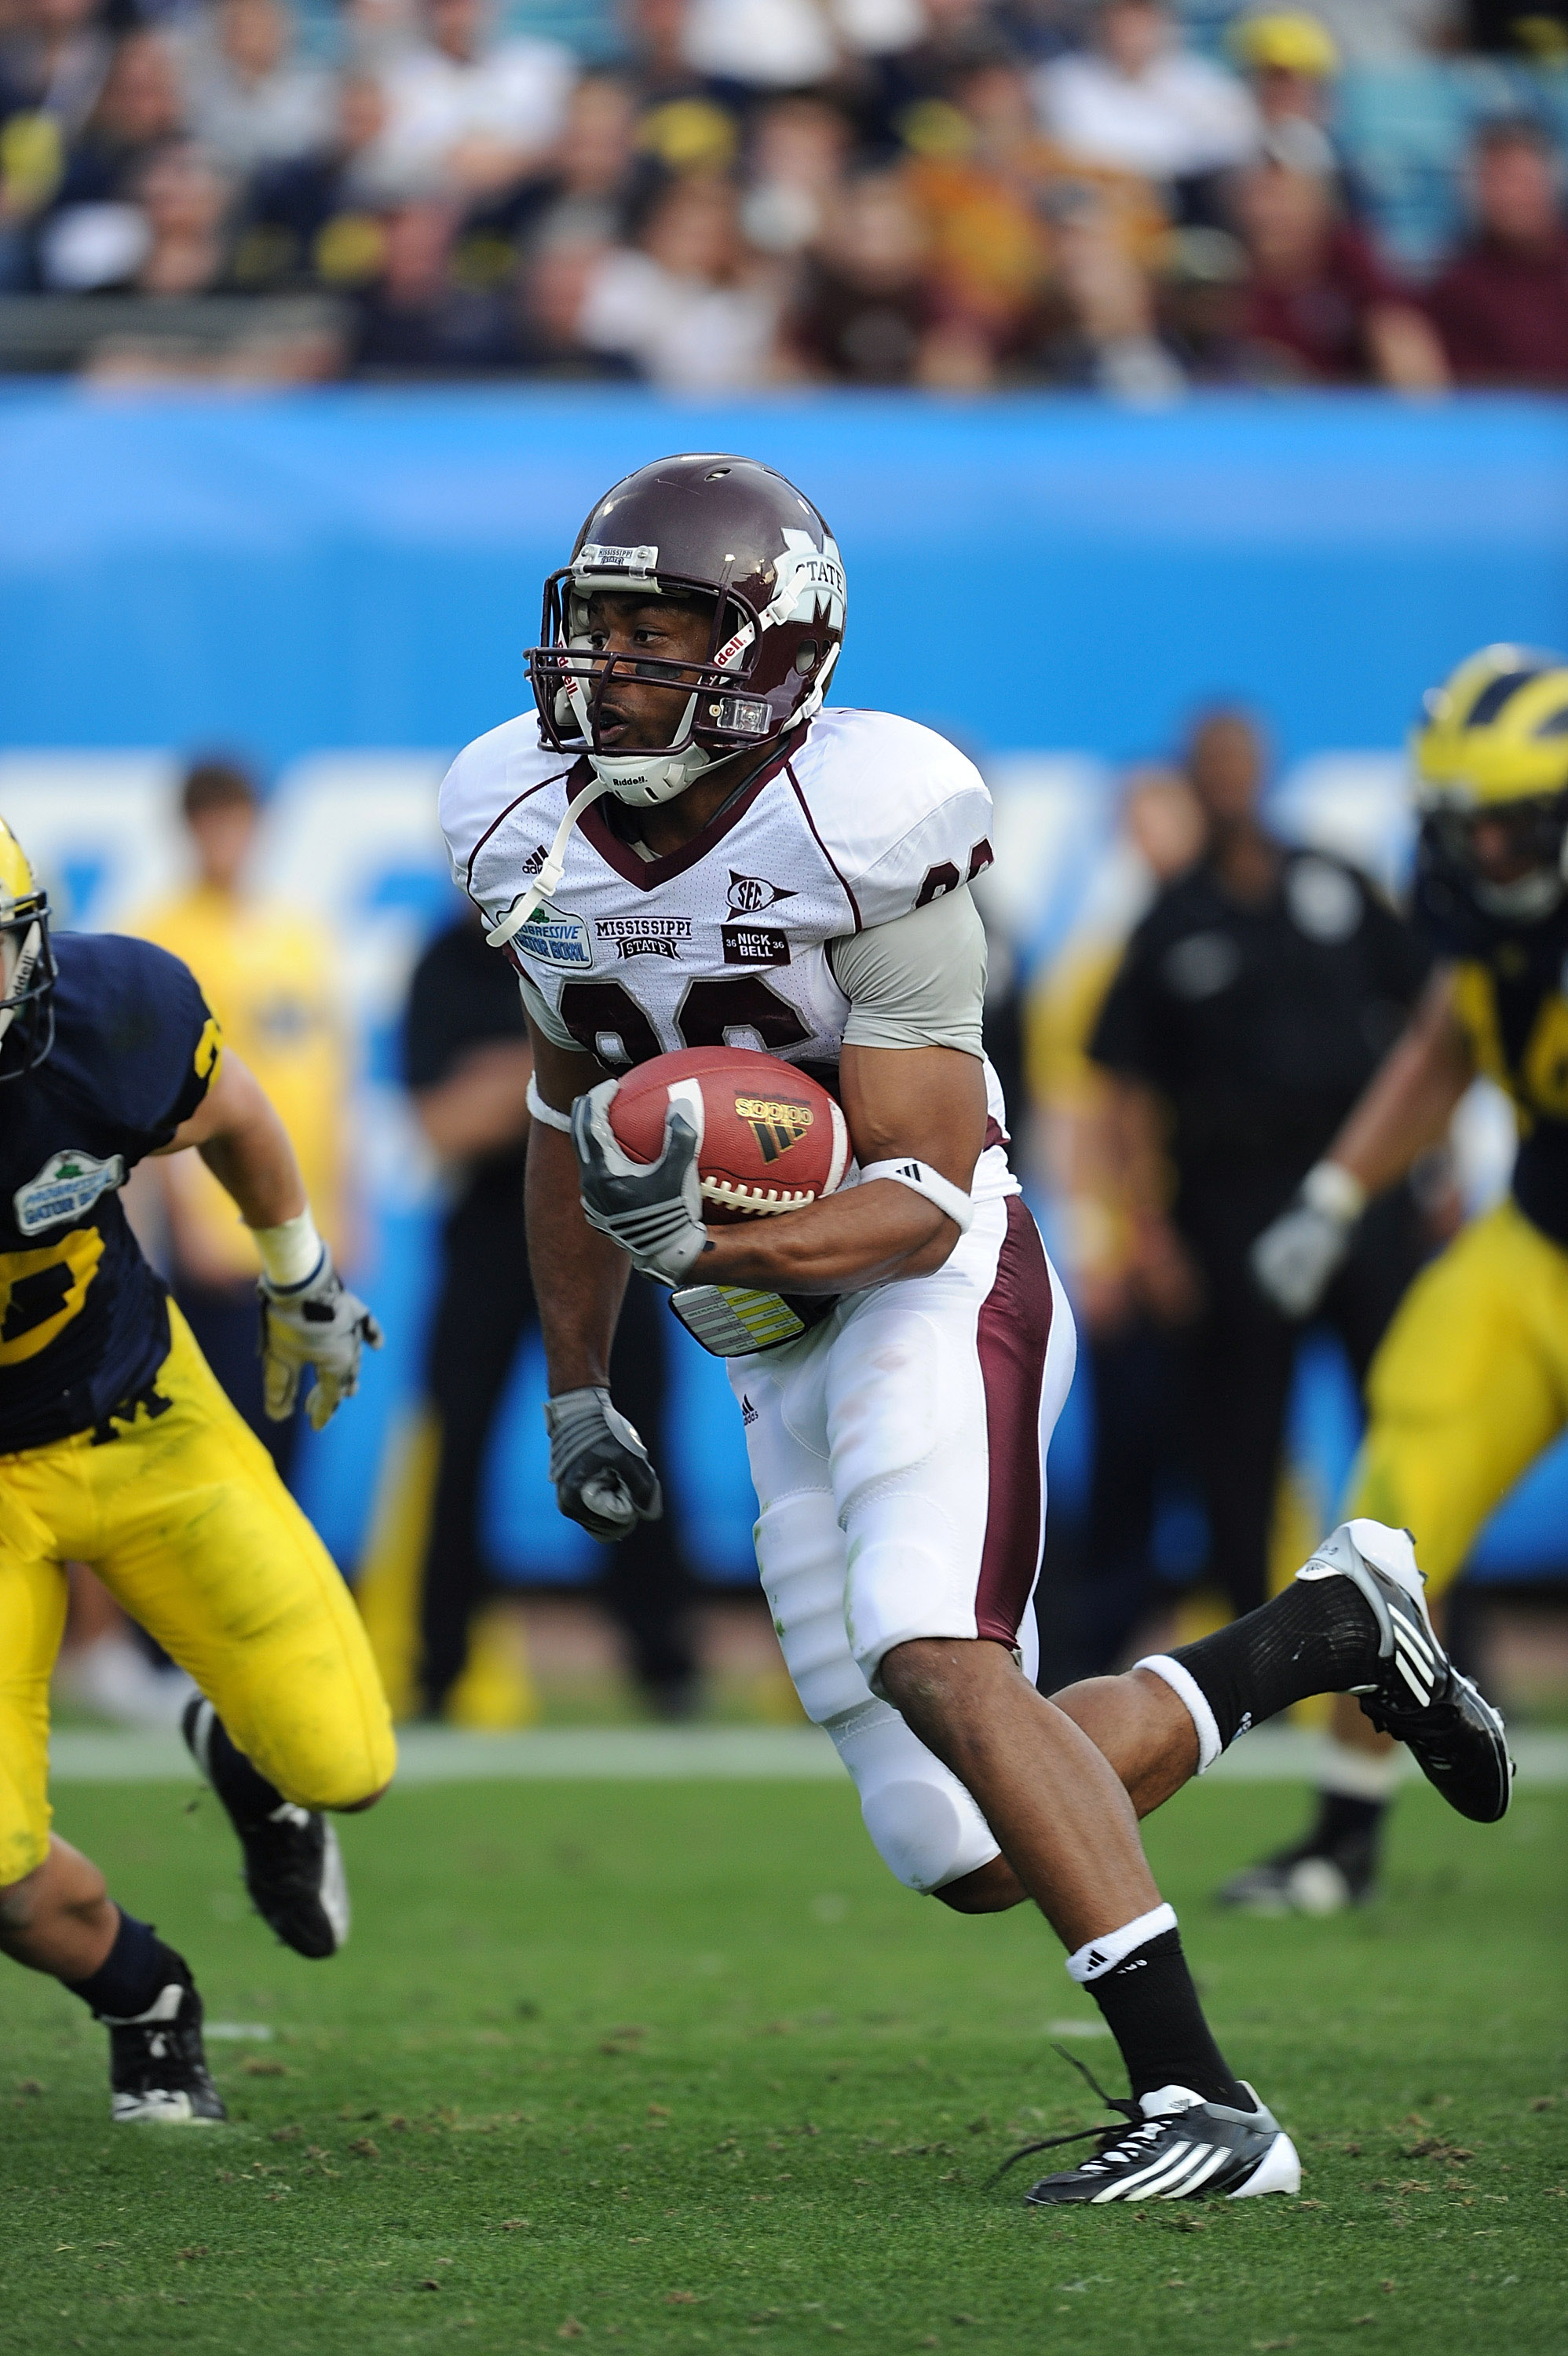 JACKSONVILLE, FL - JANUARY 01:  Michael Carr #86 of the Mississippi State Bulldogs scores on a 31 yard pass reception in the second half against the Michigan Wolverines during the Gator Bowl at EverBank Field on January 1, 2011 in Jacksonville, Florida  (